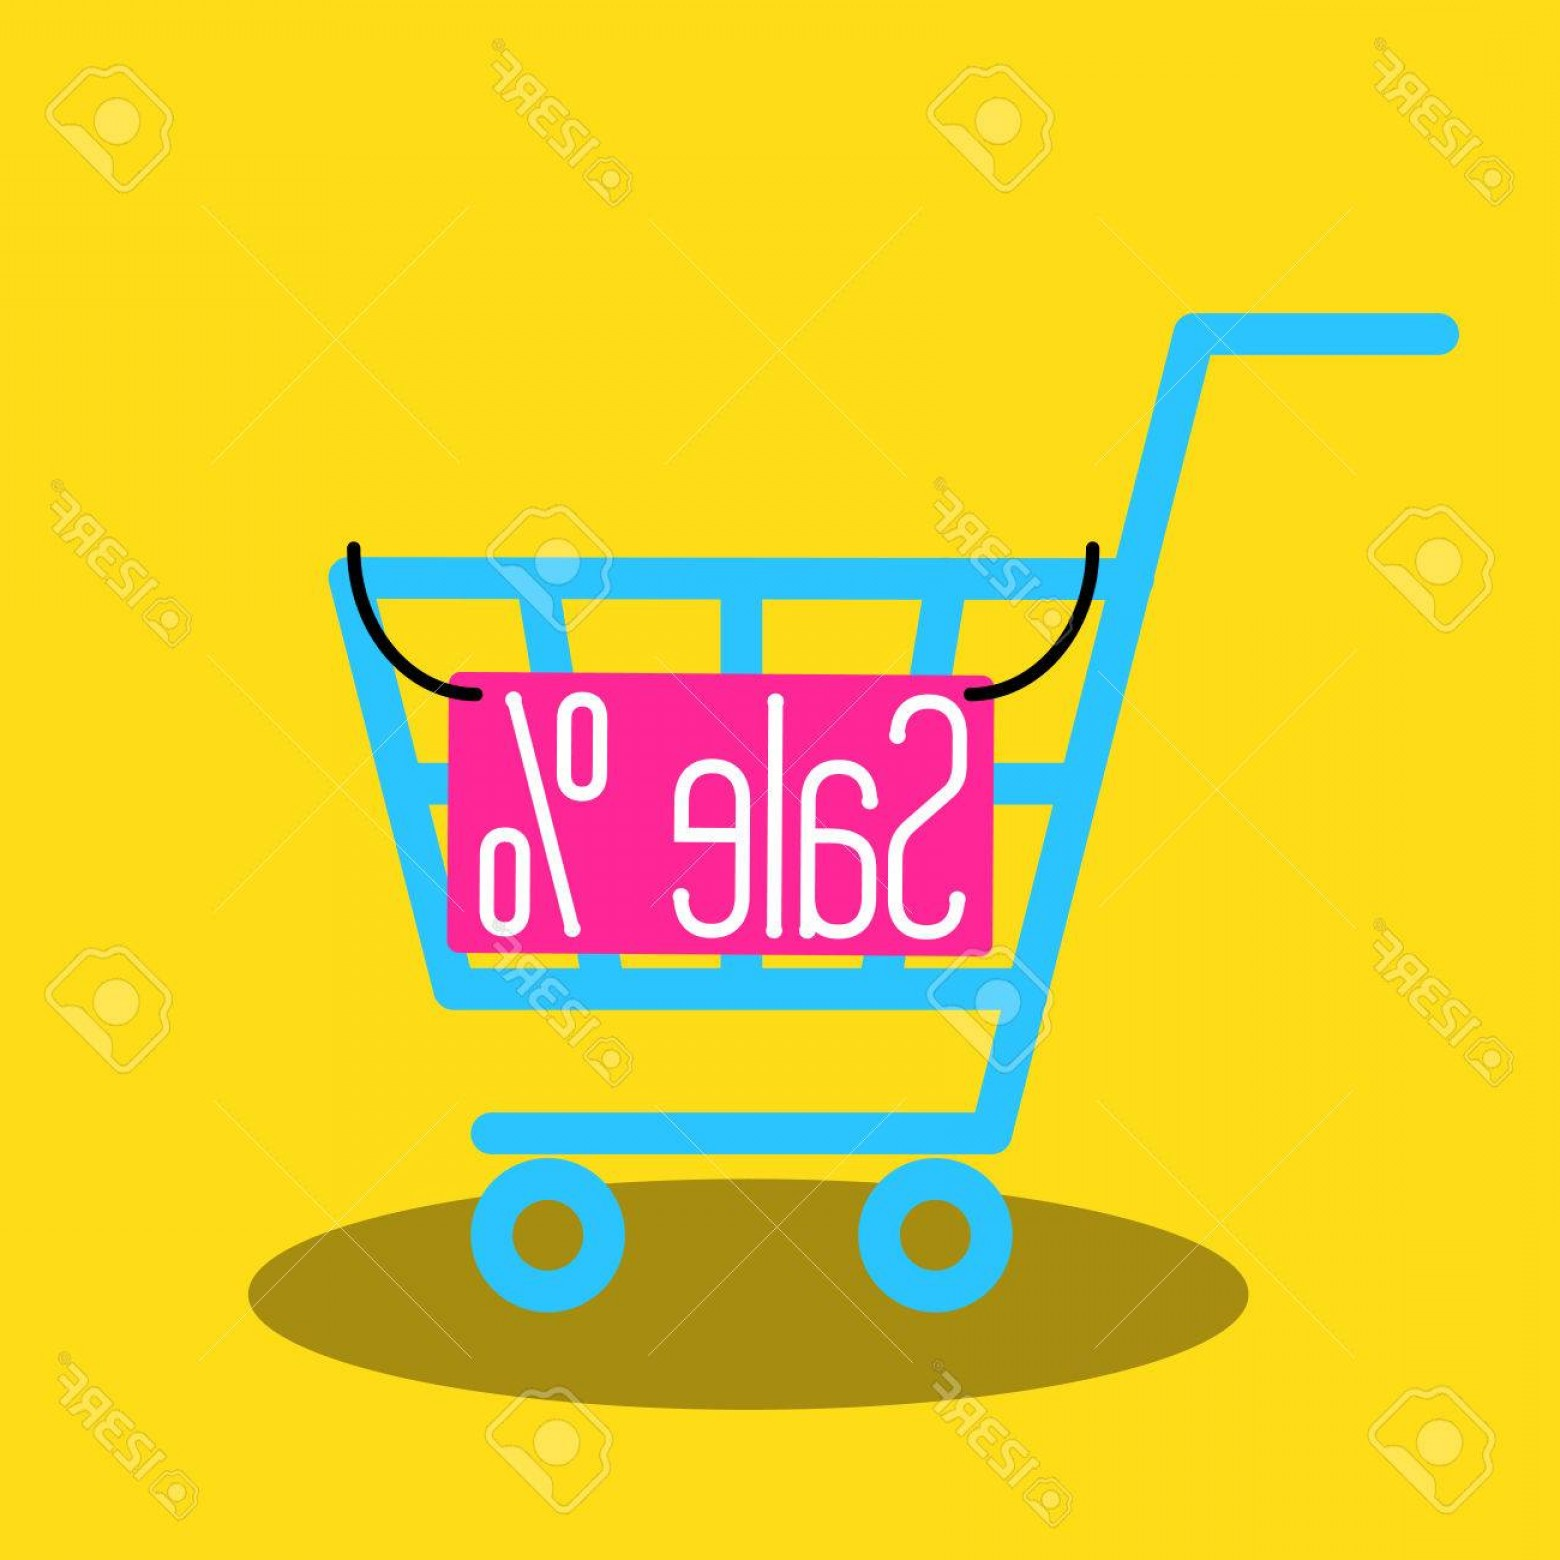 Nameplate Vector Graphics: Photostock Vector Shopping Cart Vector Icon With Sale Nameplate Empty Market Cart For Sale Banner